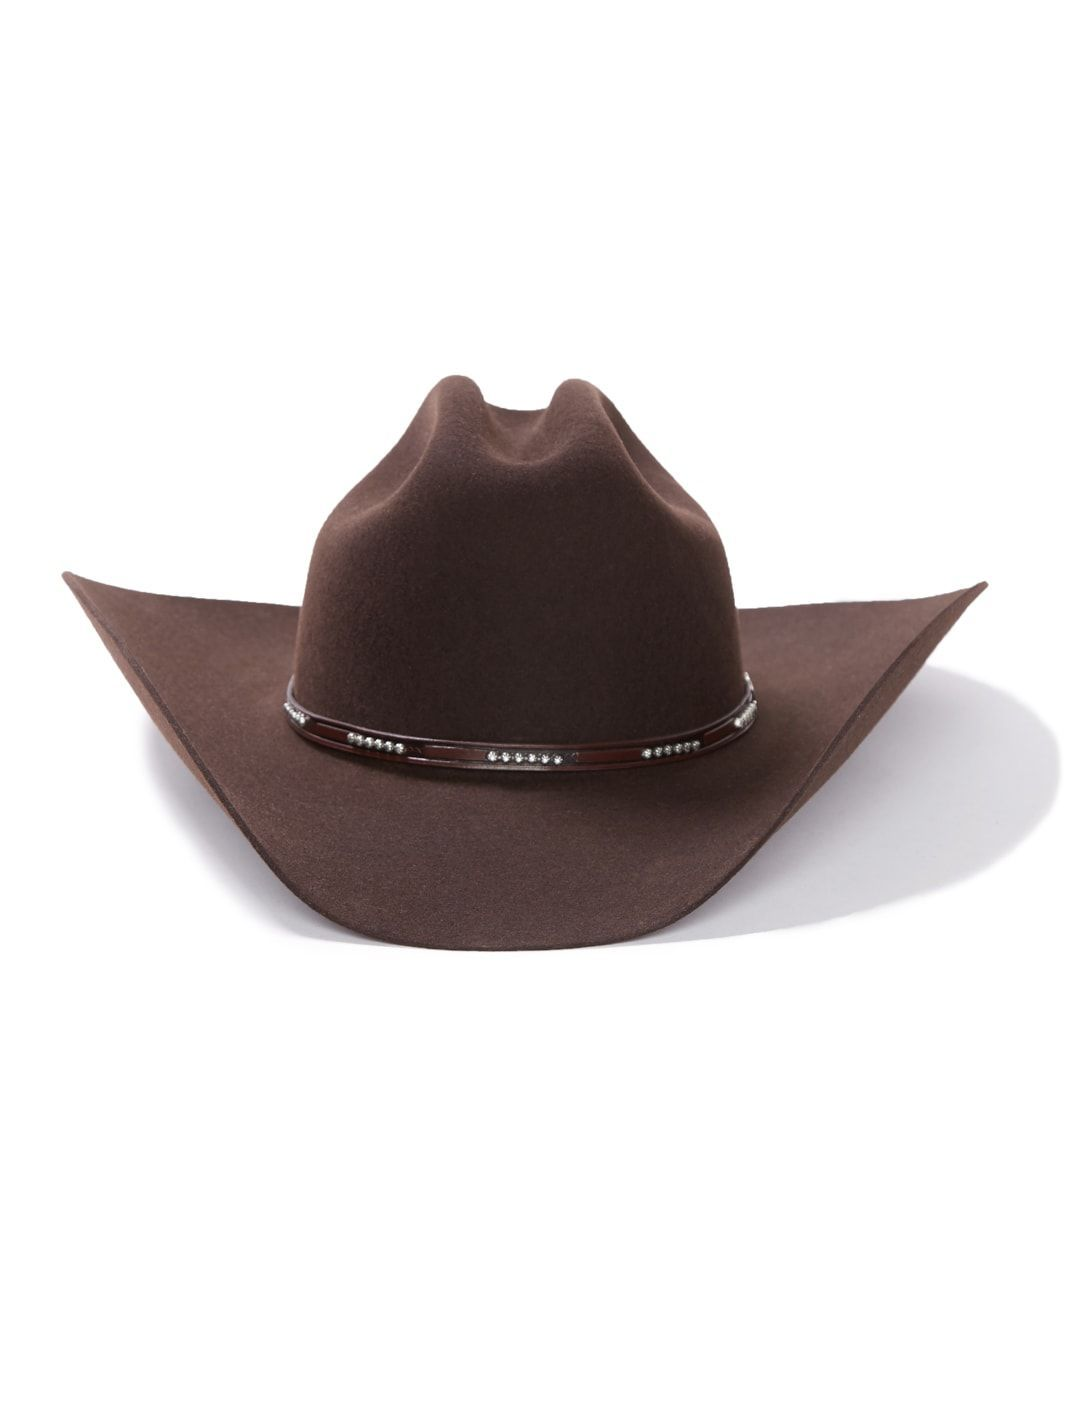 Stetson LLANO 4X Wool Cowboy Hat Chocolate with Pinch Front ... a6564c2c041